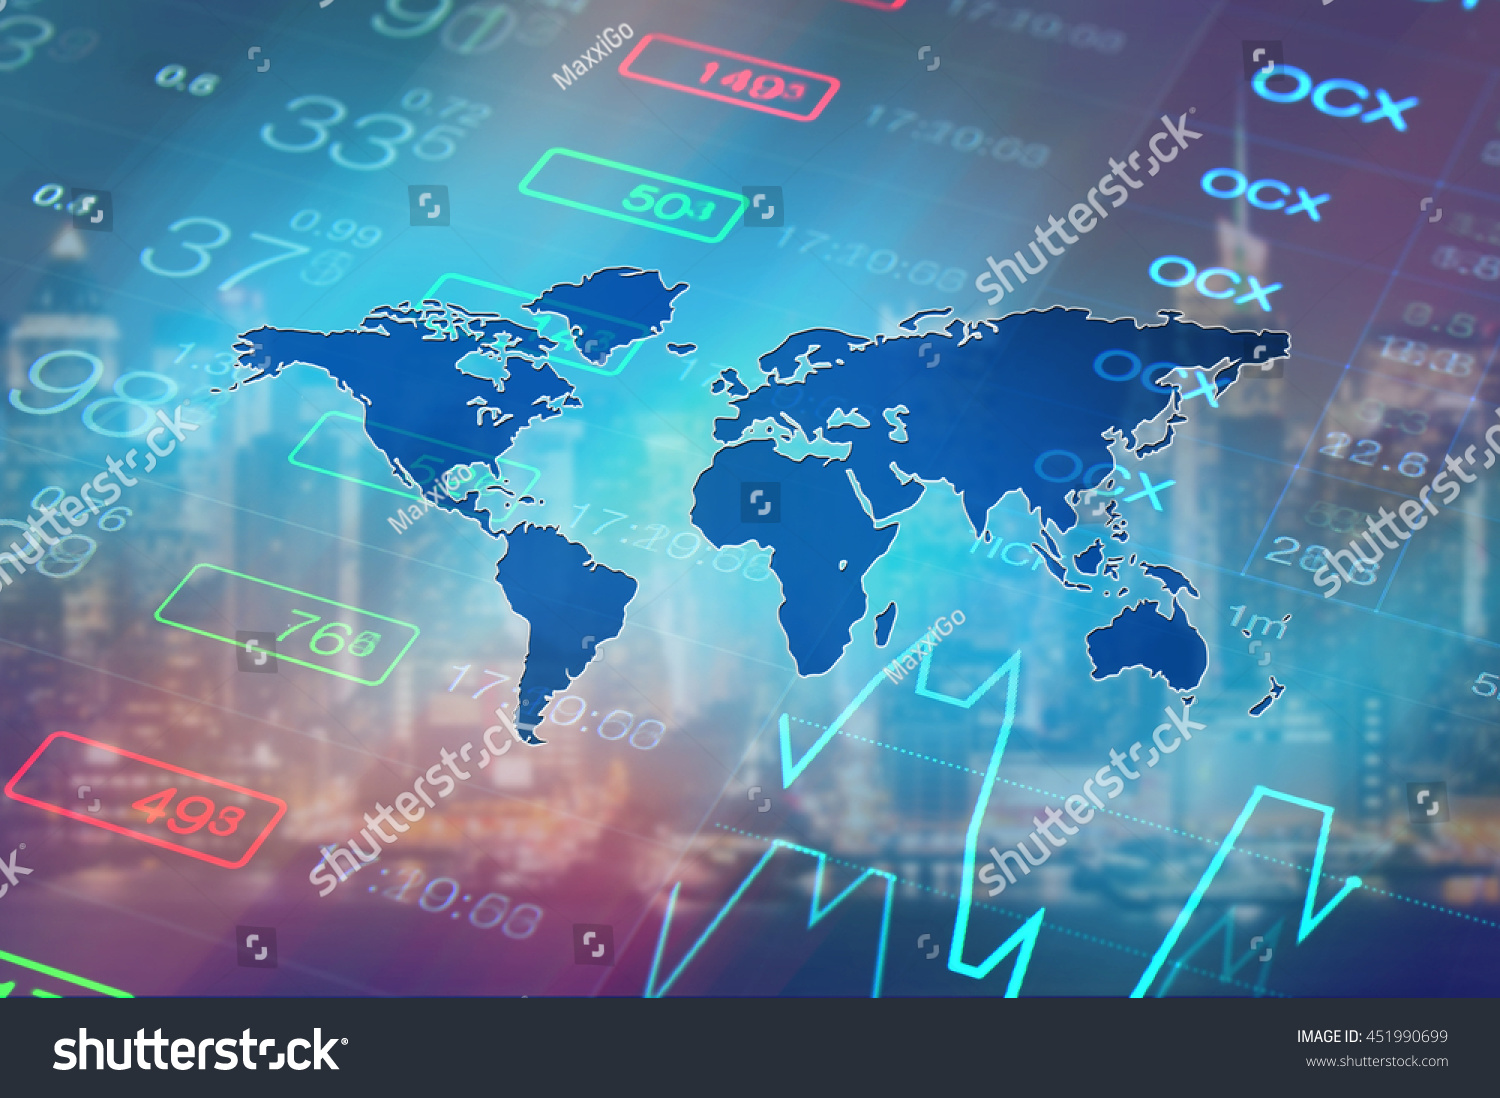 economy background abstract stock market graph stock photo (edit now